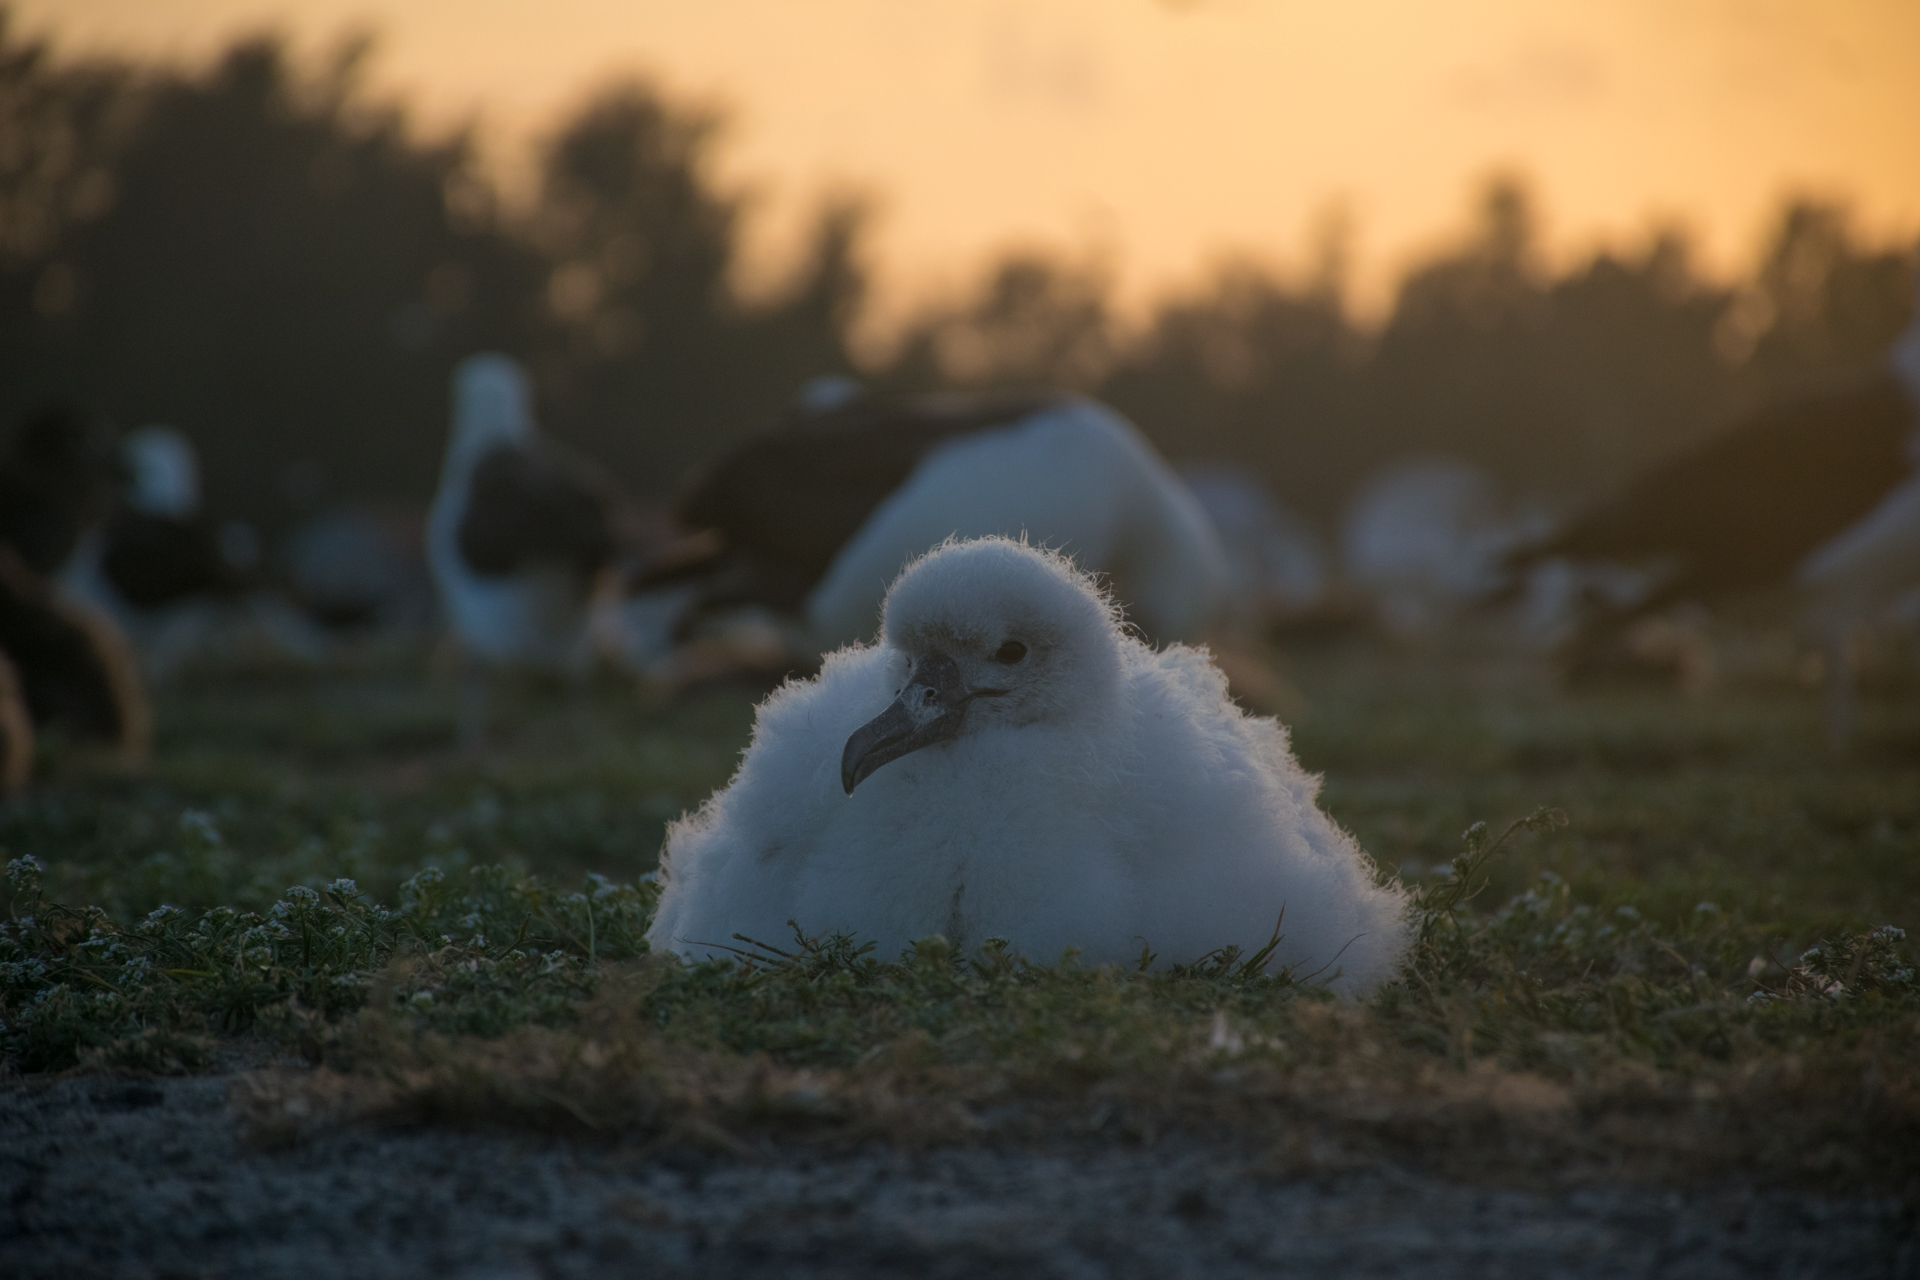 Midway, Atoll, Island, Albatross, Chick, Albino, Sunset, Magic, Golden, Hour, Photography, Northwestern, Hawaiian, one in a million, rare, exotic, bird, animal, one of a kind